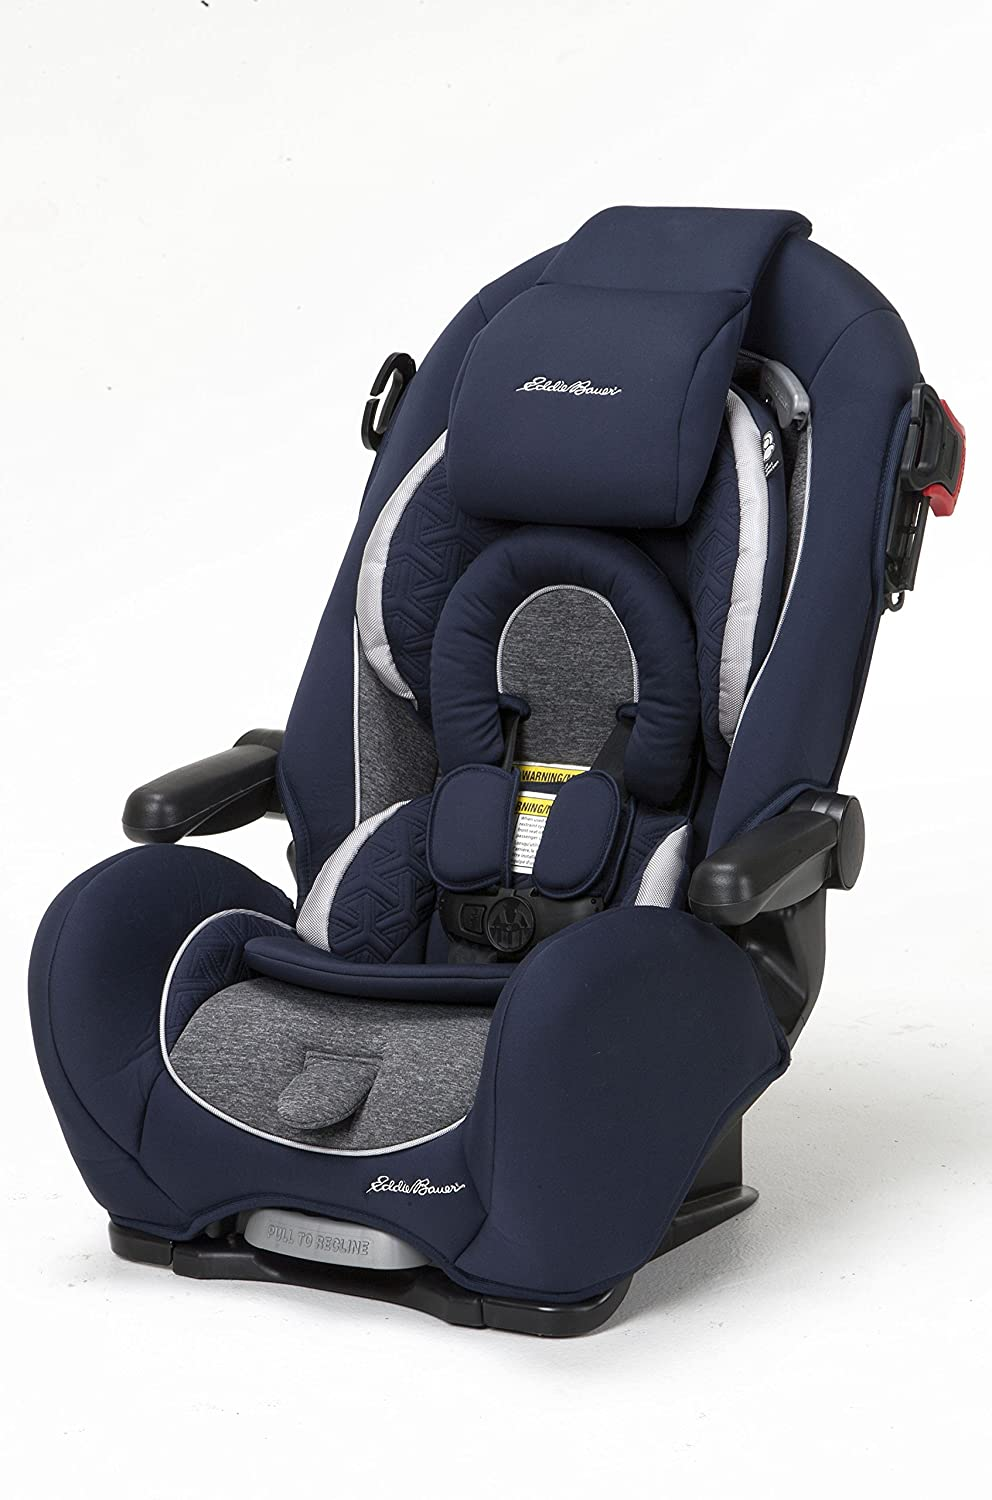 Eddie Bauer DLX 3-IN-1 Car Seat- Bolt: Amazon.ca: Baby